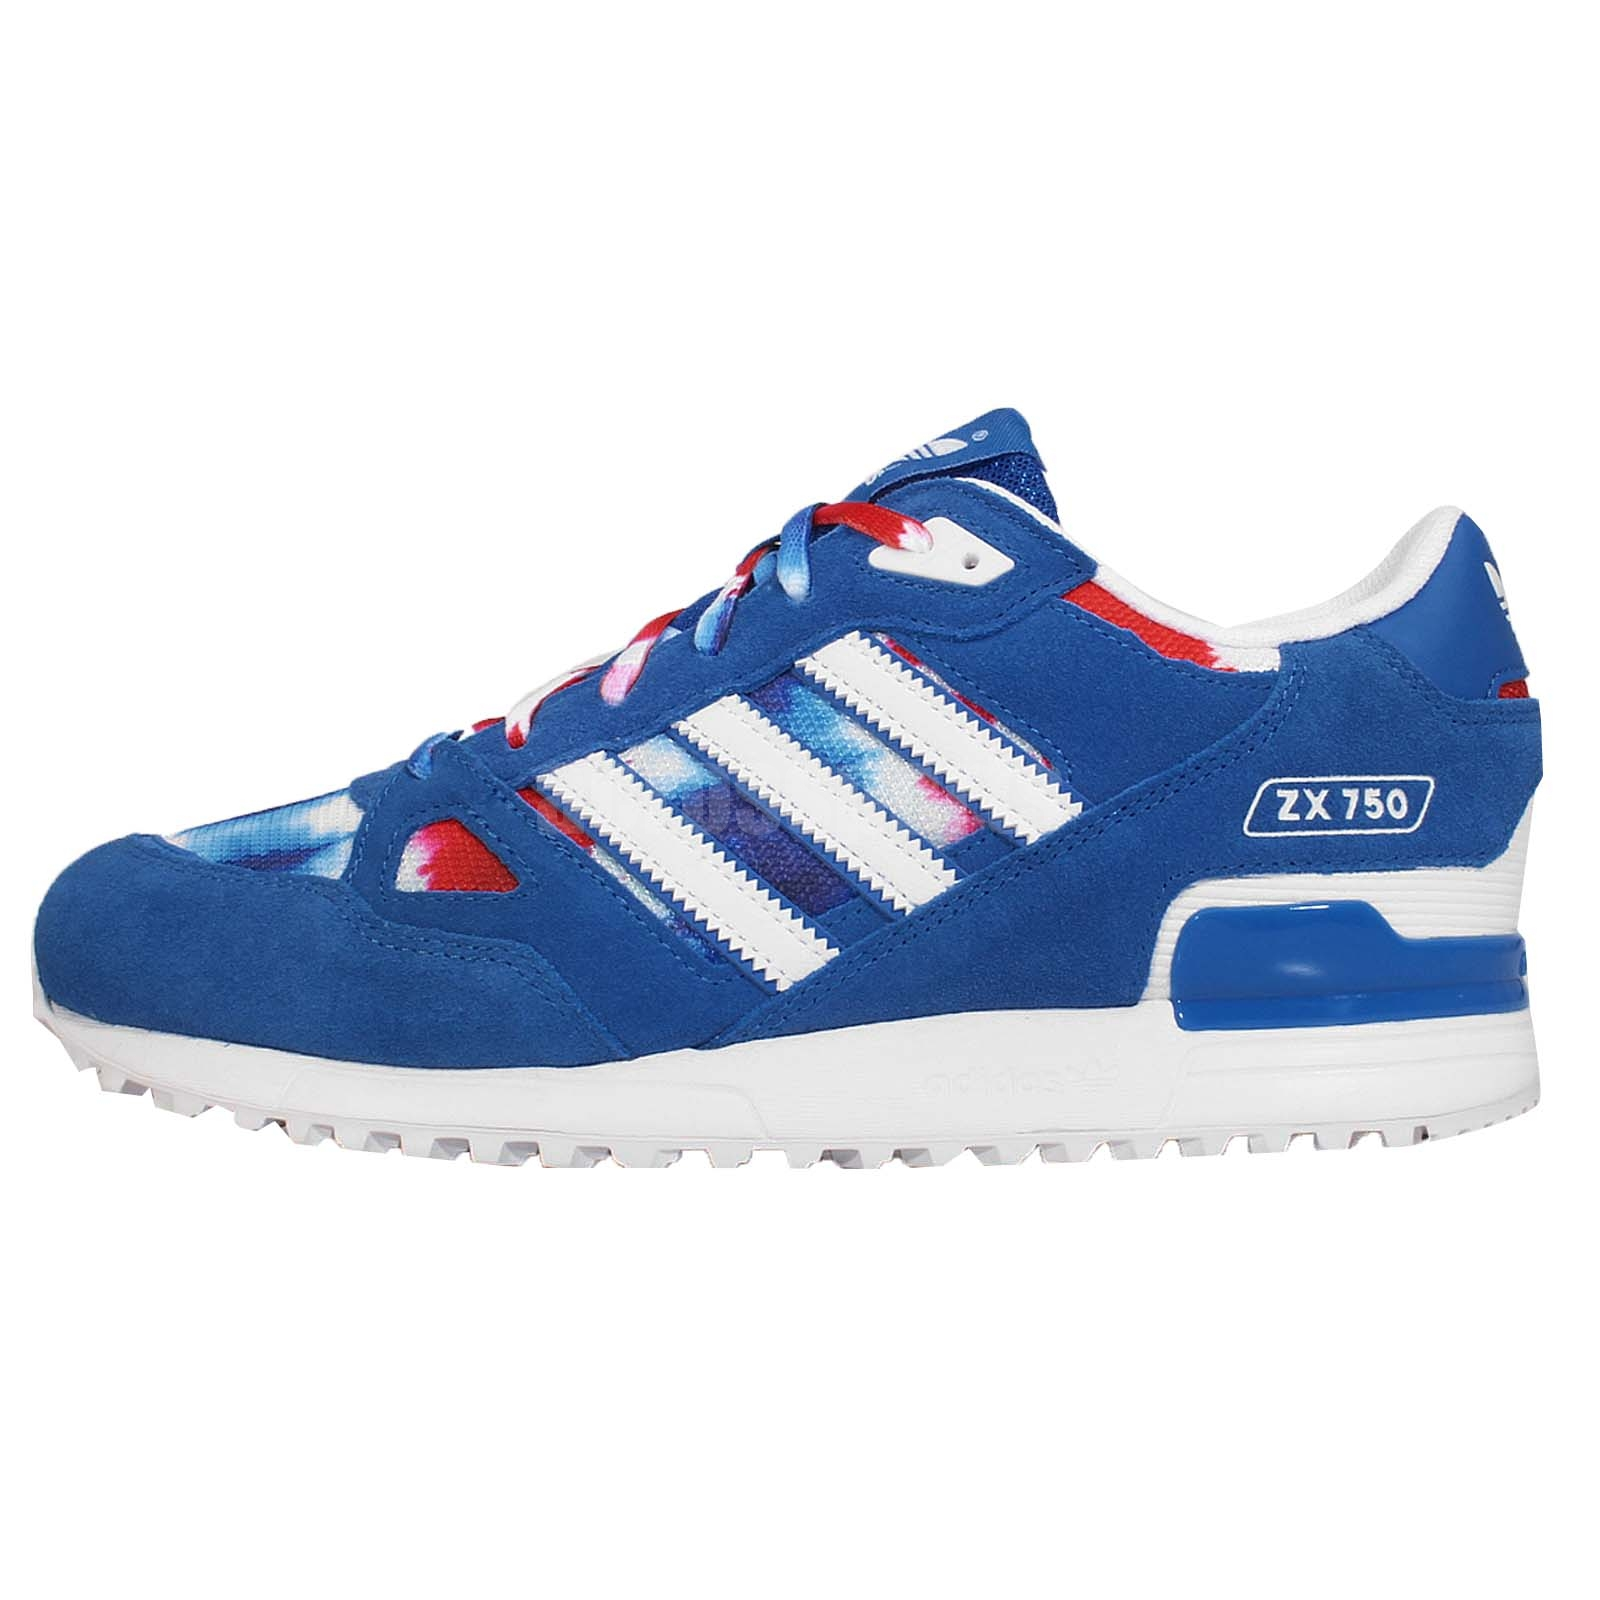 adidas zx 750 blue red white